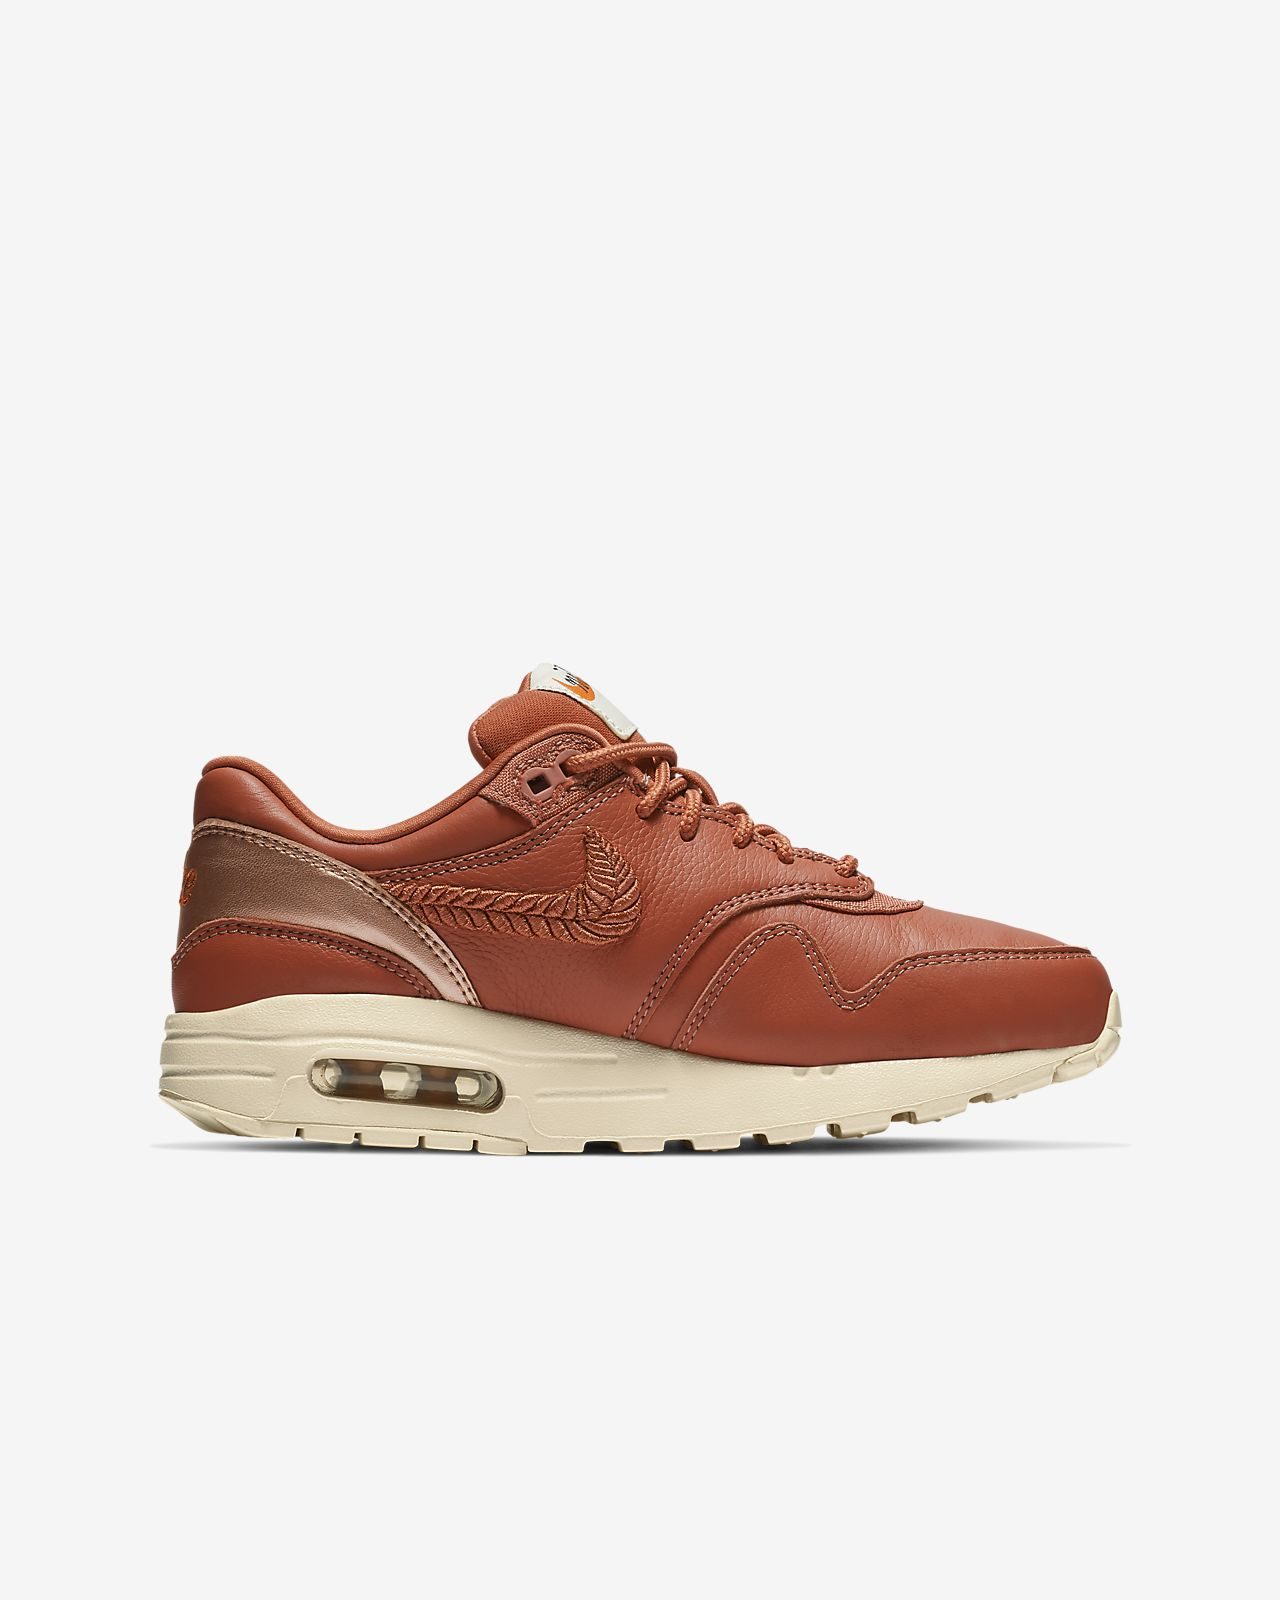 on sale 270eb dc7d3 ... Nike Air Max 1 Premium Embroidered Big Kids  Shoe